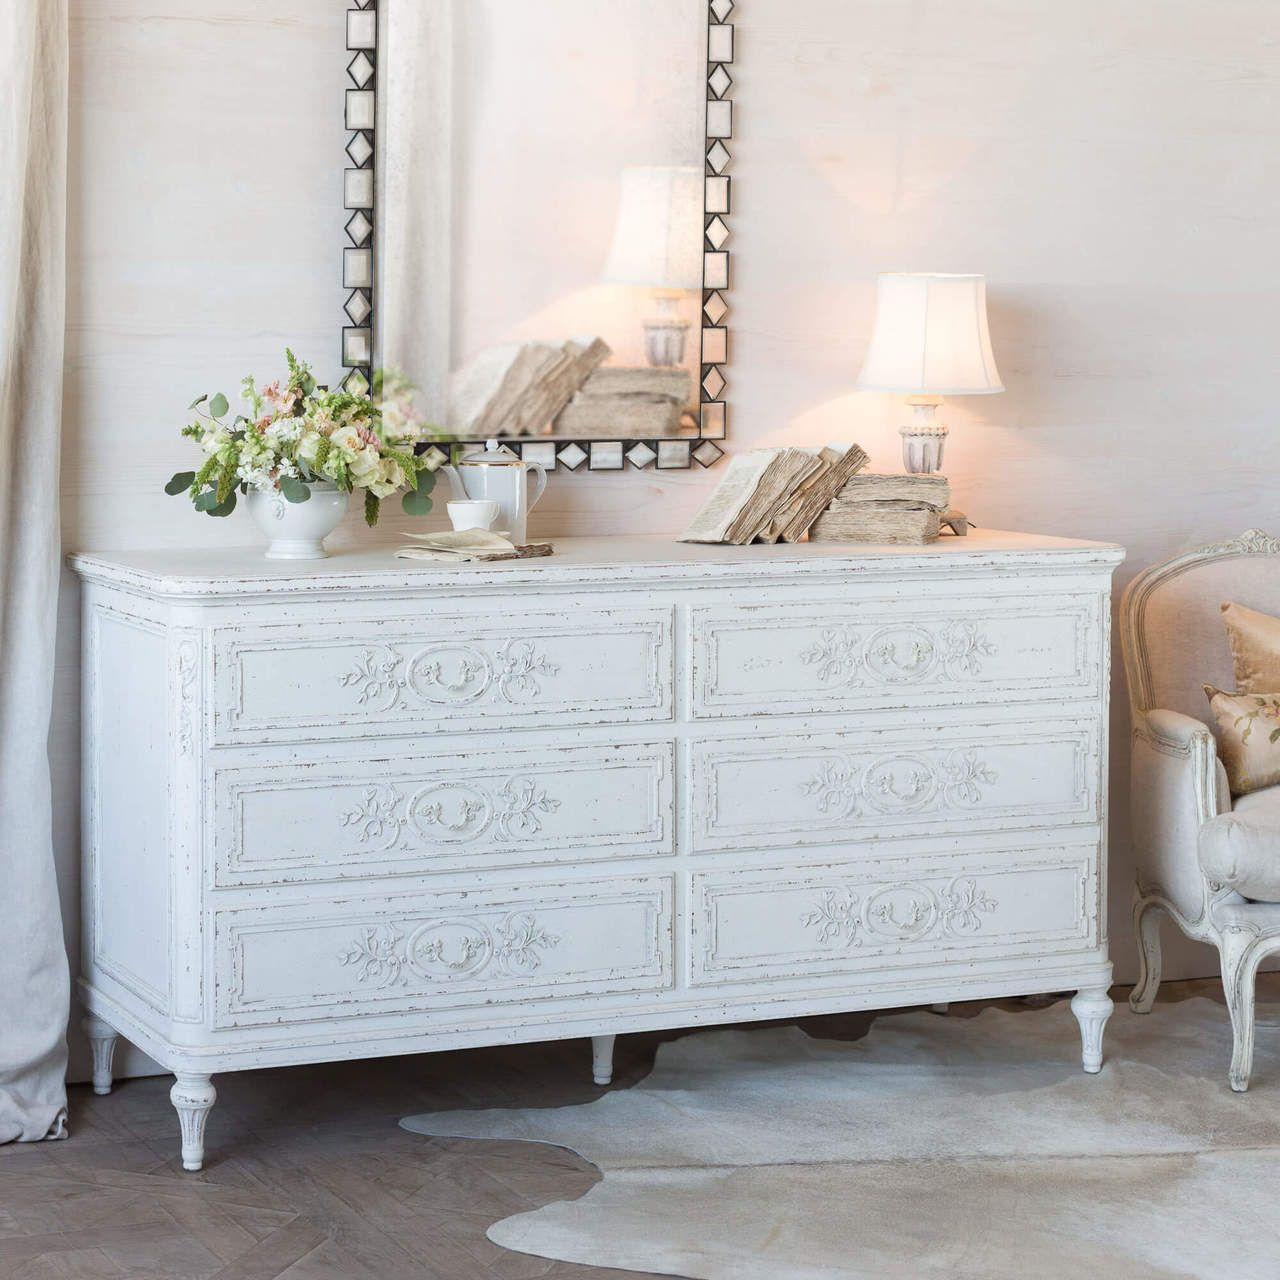 Eloquence Bronte Dresser In Weathered White Finish In 2021 Weathered White Top Quality Furniture Bedroom Inspirations [ 1280 x 1280 Pixel ]